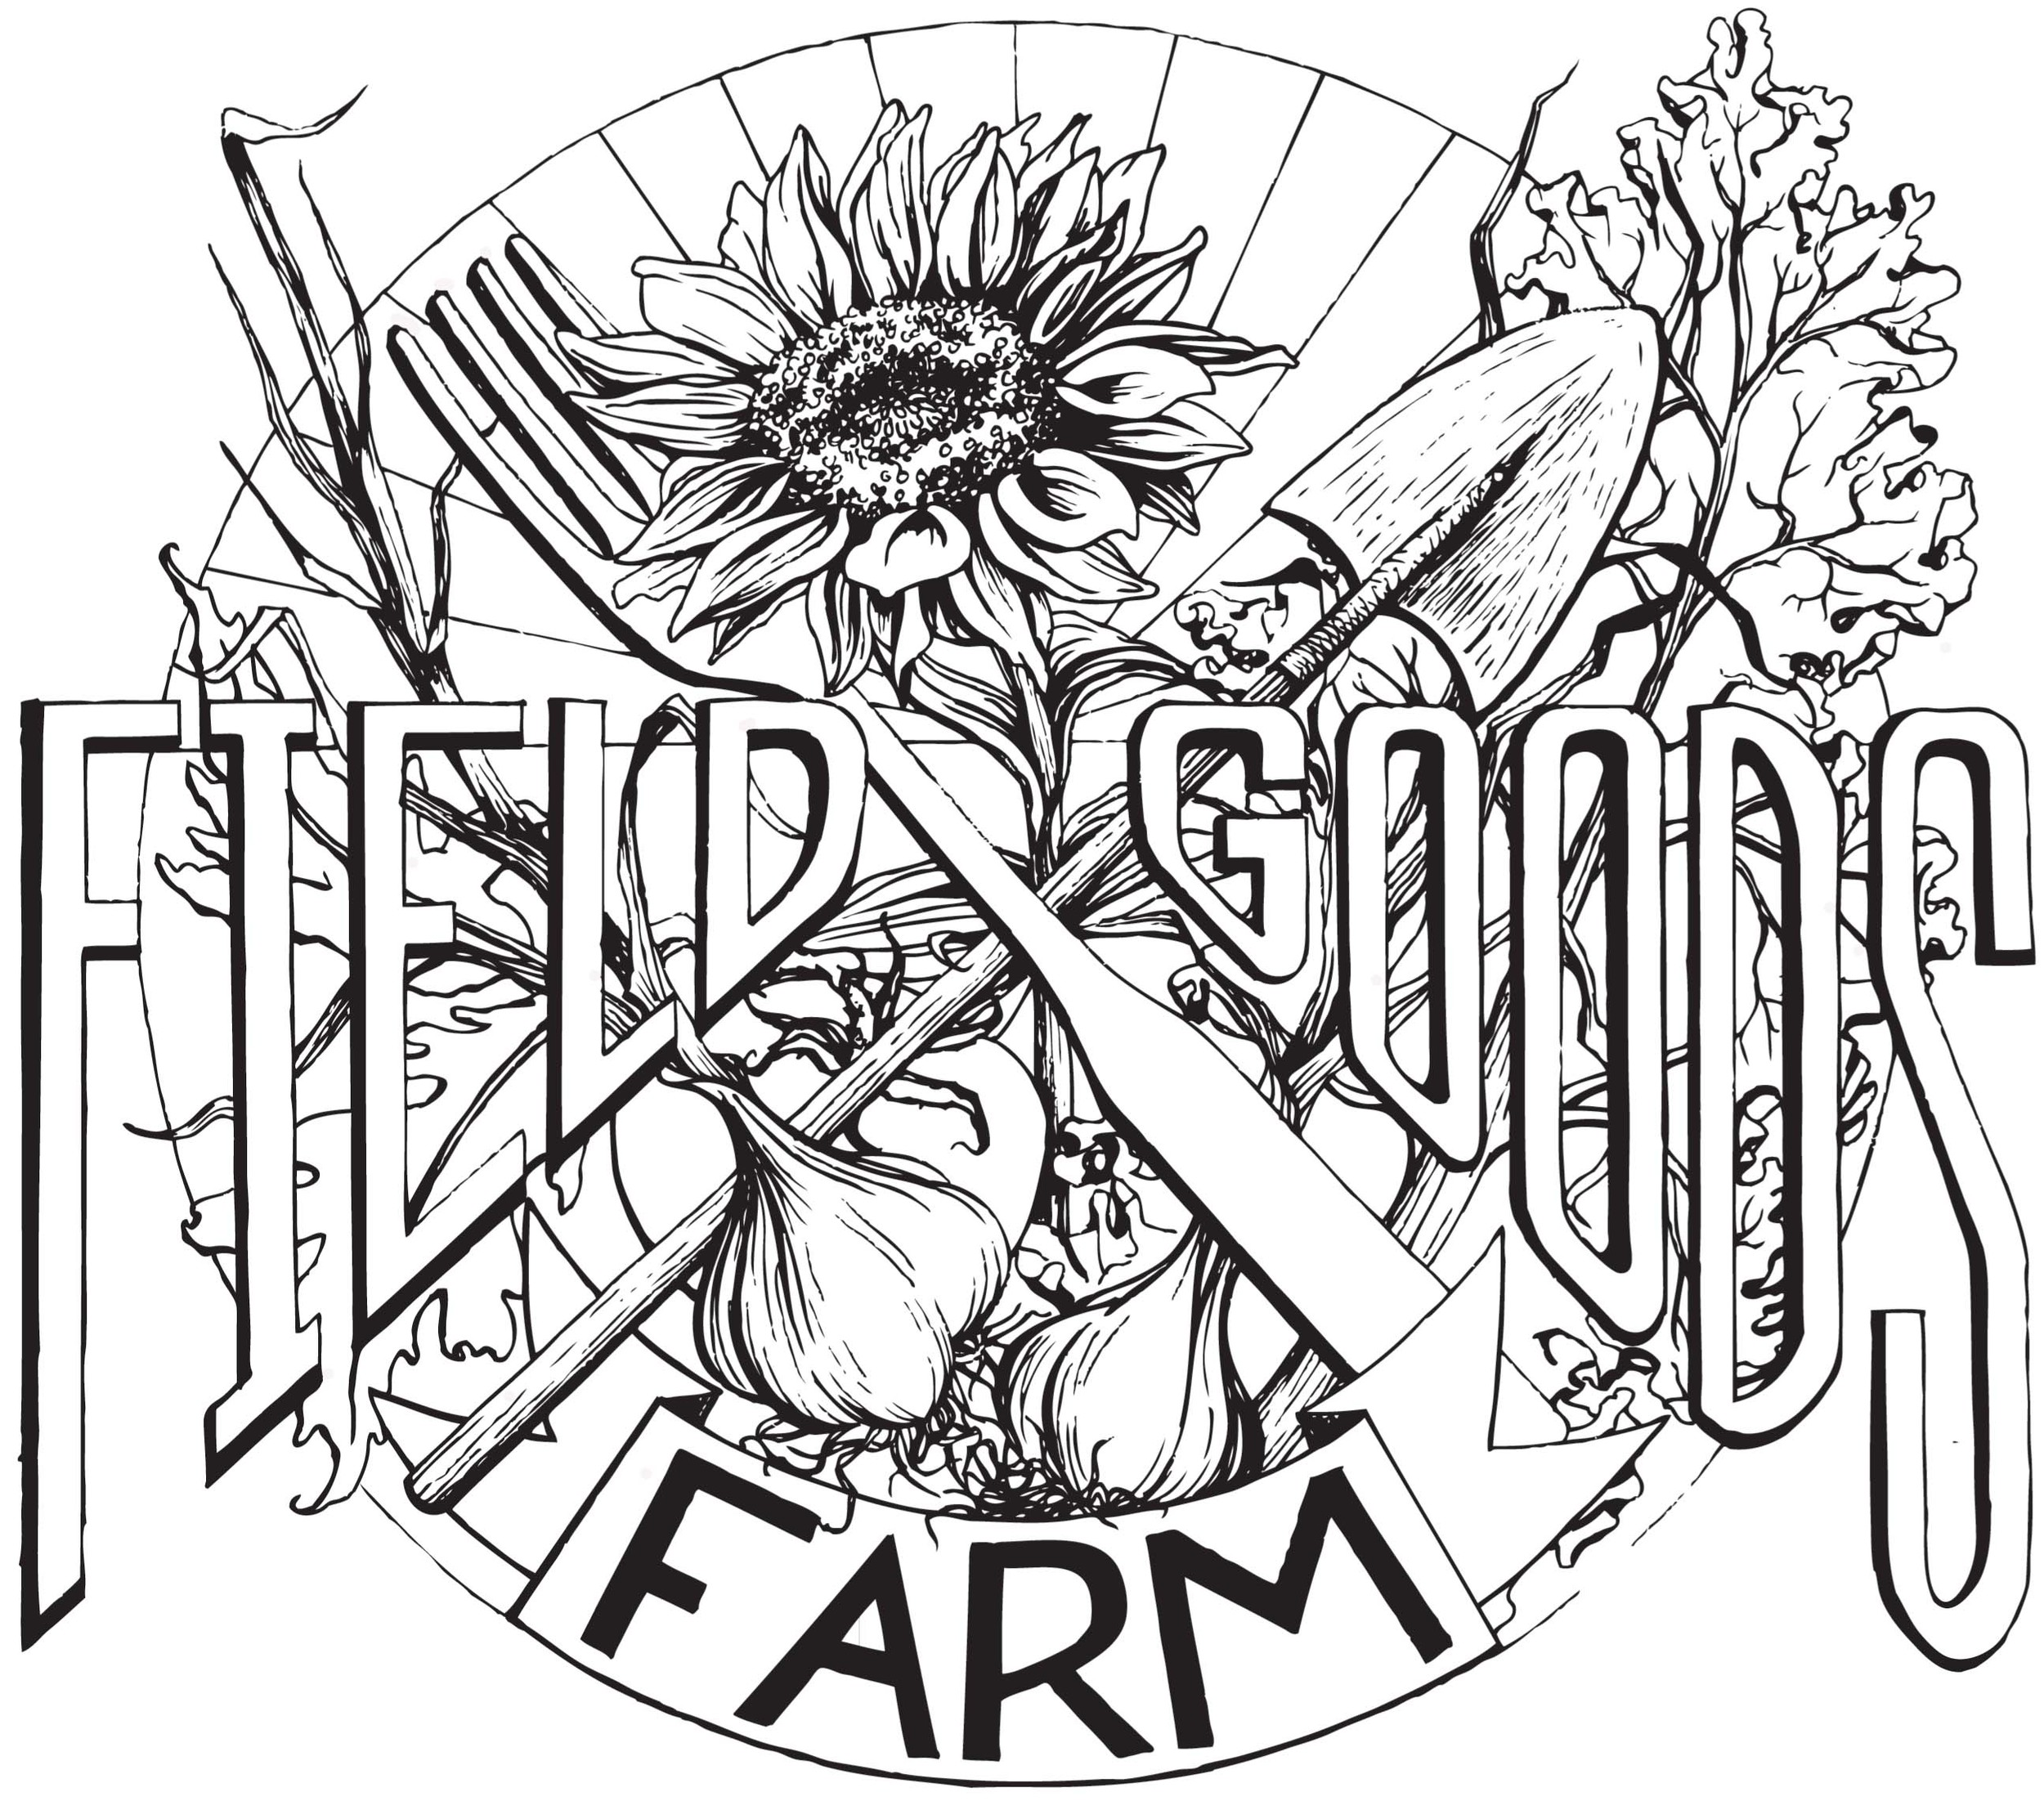 Field Goods Farms